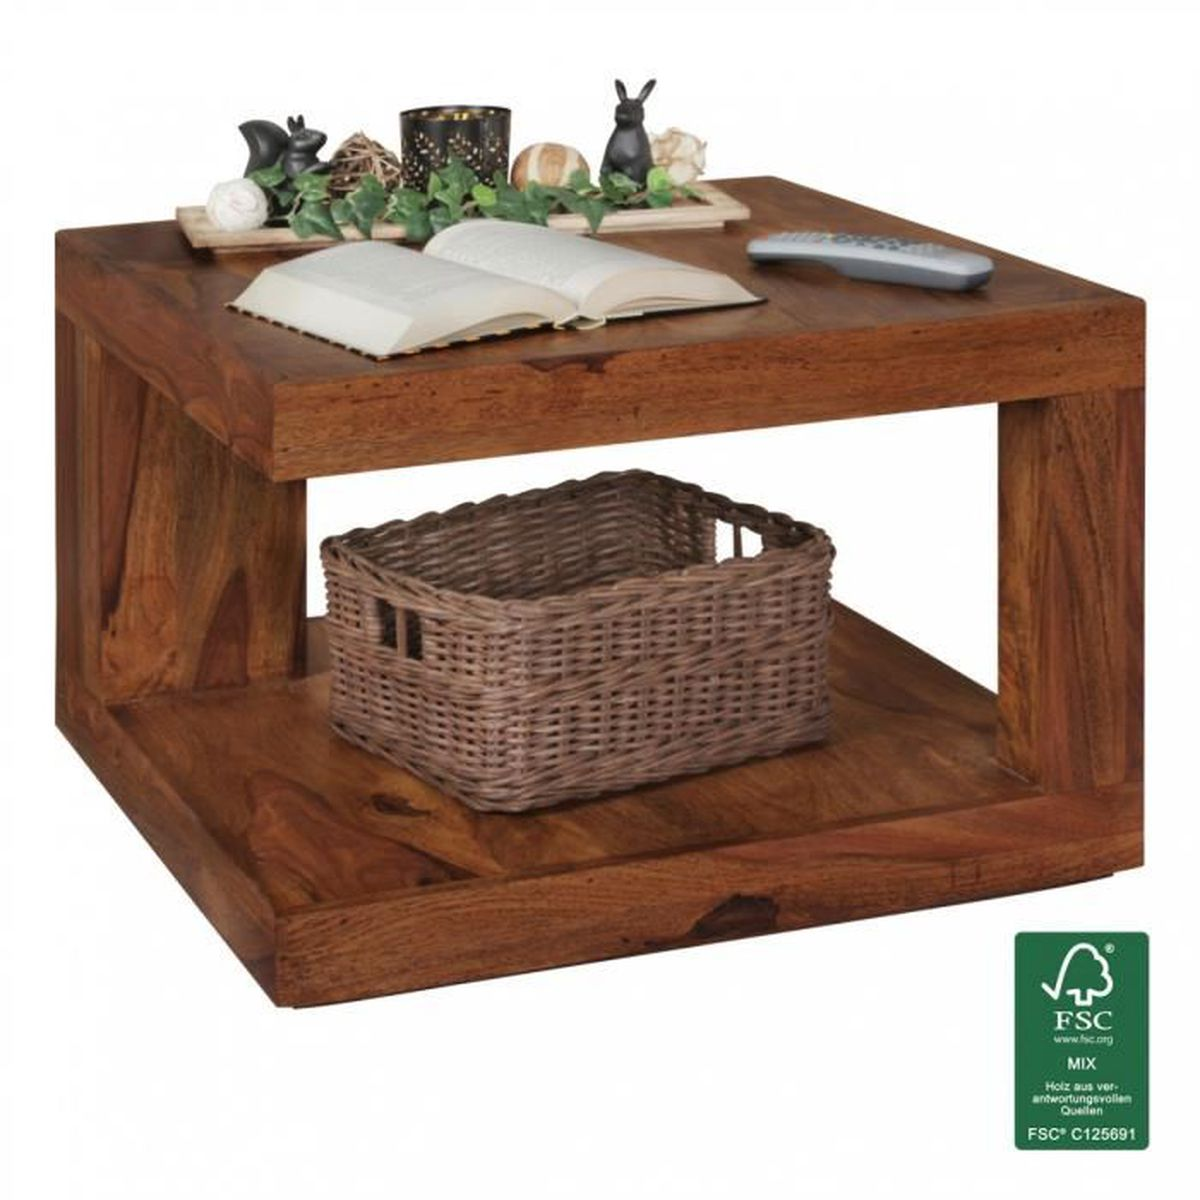 Wohnling table basse en bois massif table basse sheesham - Table basse en bois massif ...